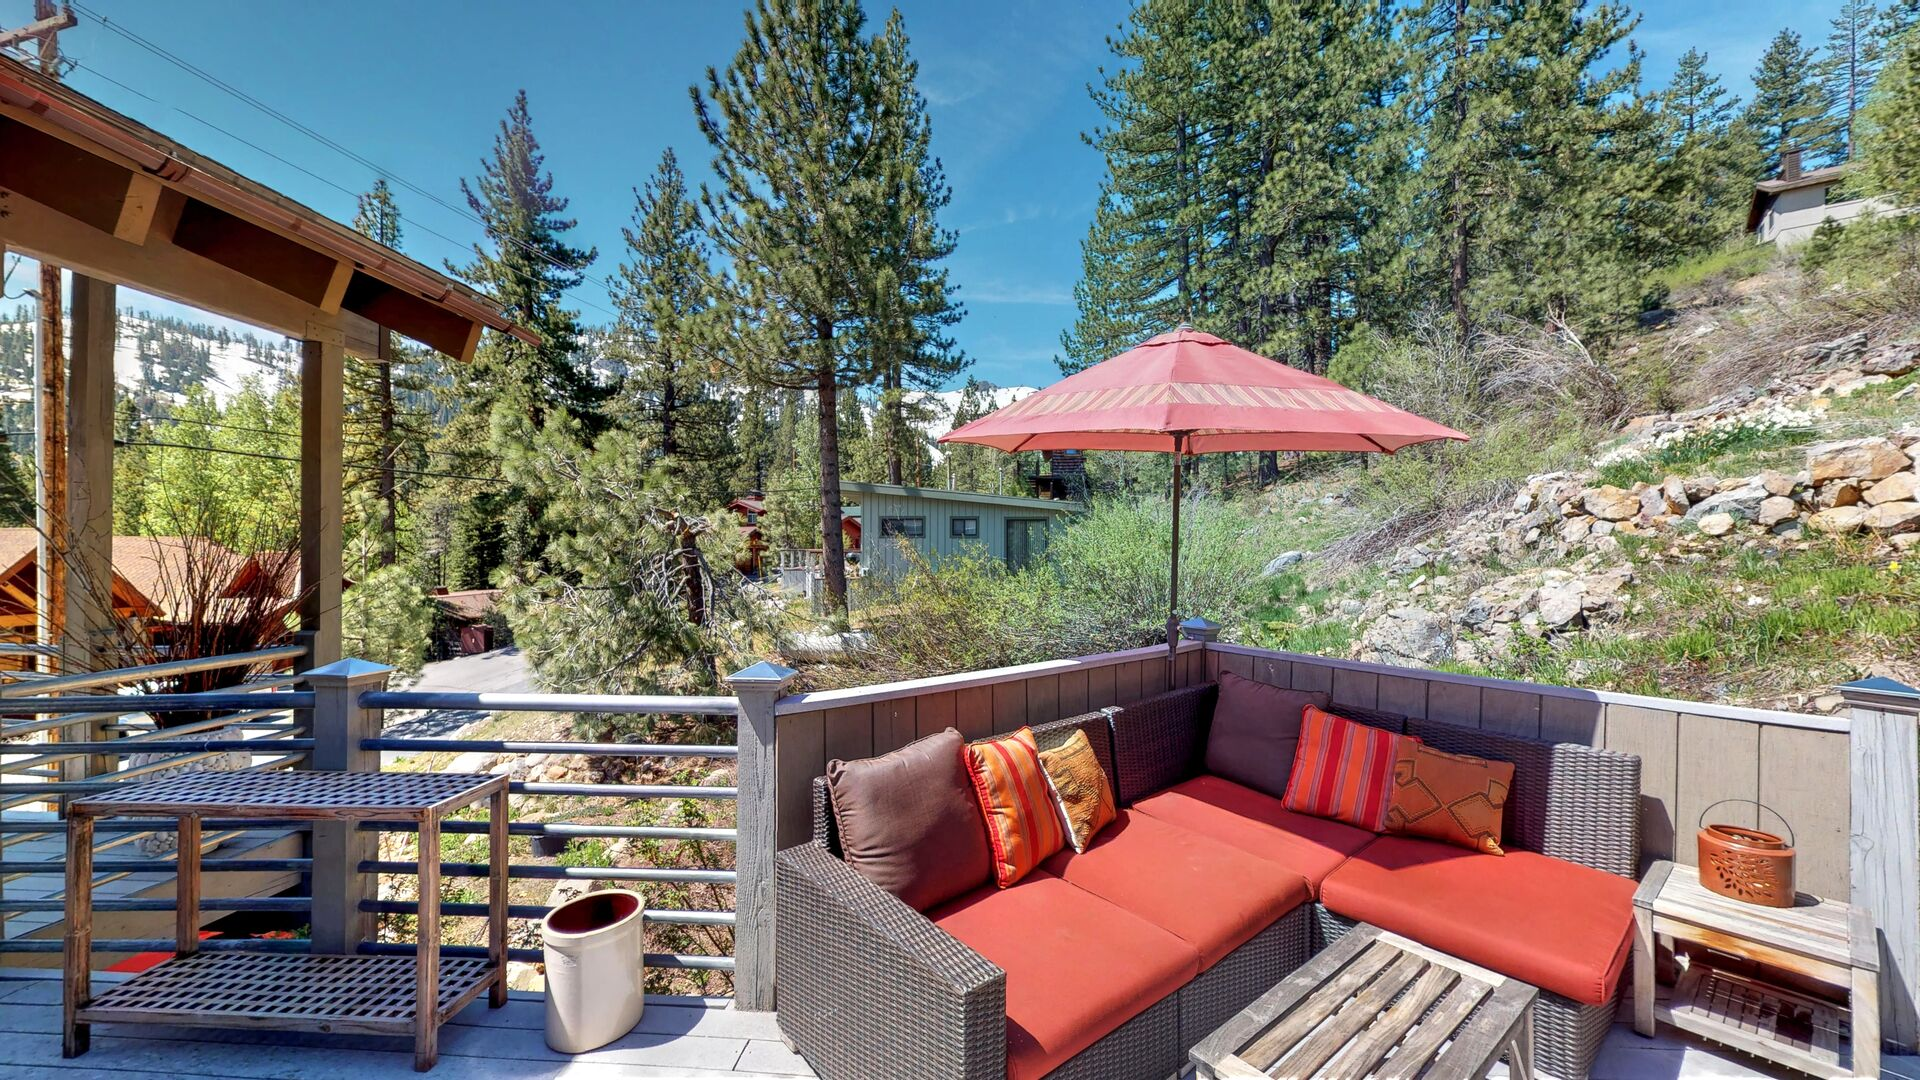 Outdoor sofa on the patio of this squaw valley rental